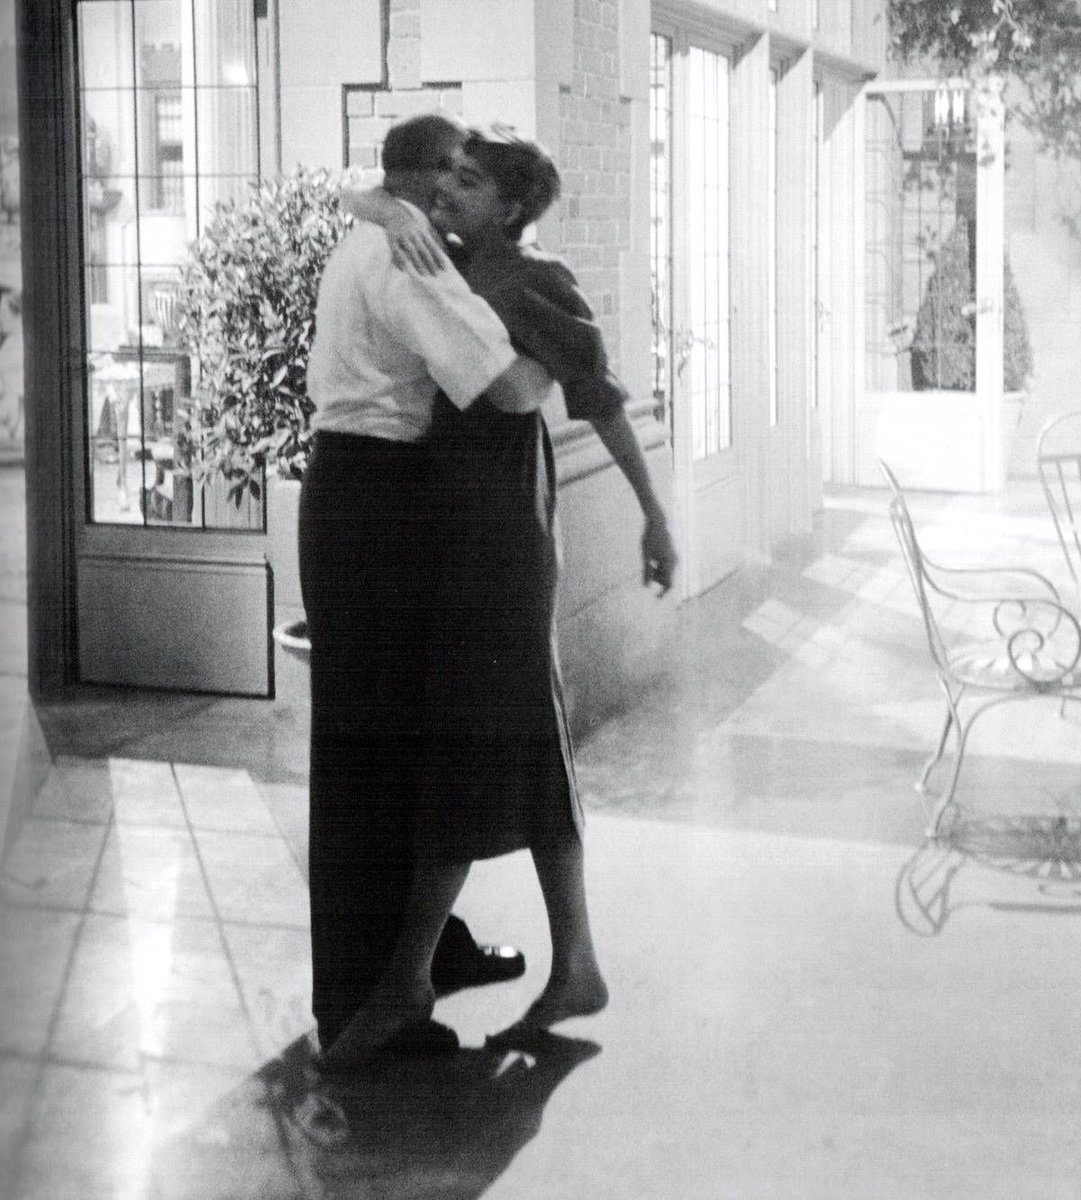 RT @aflashbak: Audrey Hepburn dancing with director Billy Wilder on the set of Sabrina, 1953 - Mark Shaw https://t.co/Fe4axO3MhY